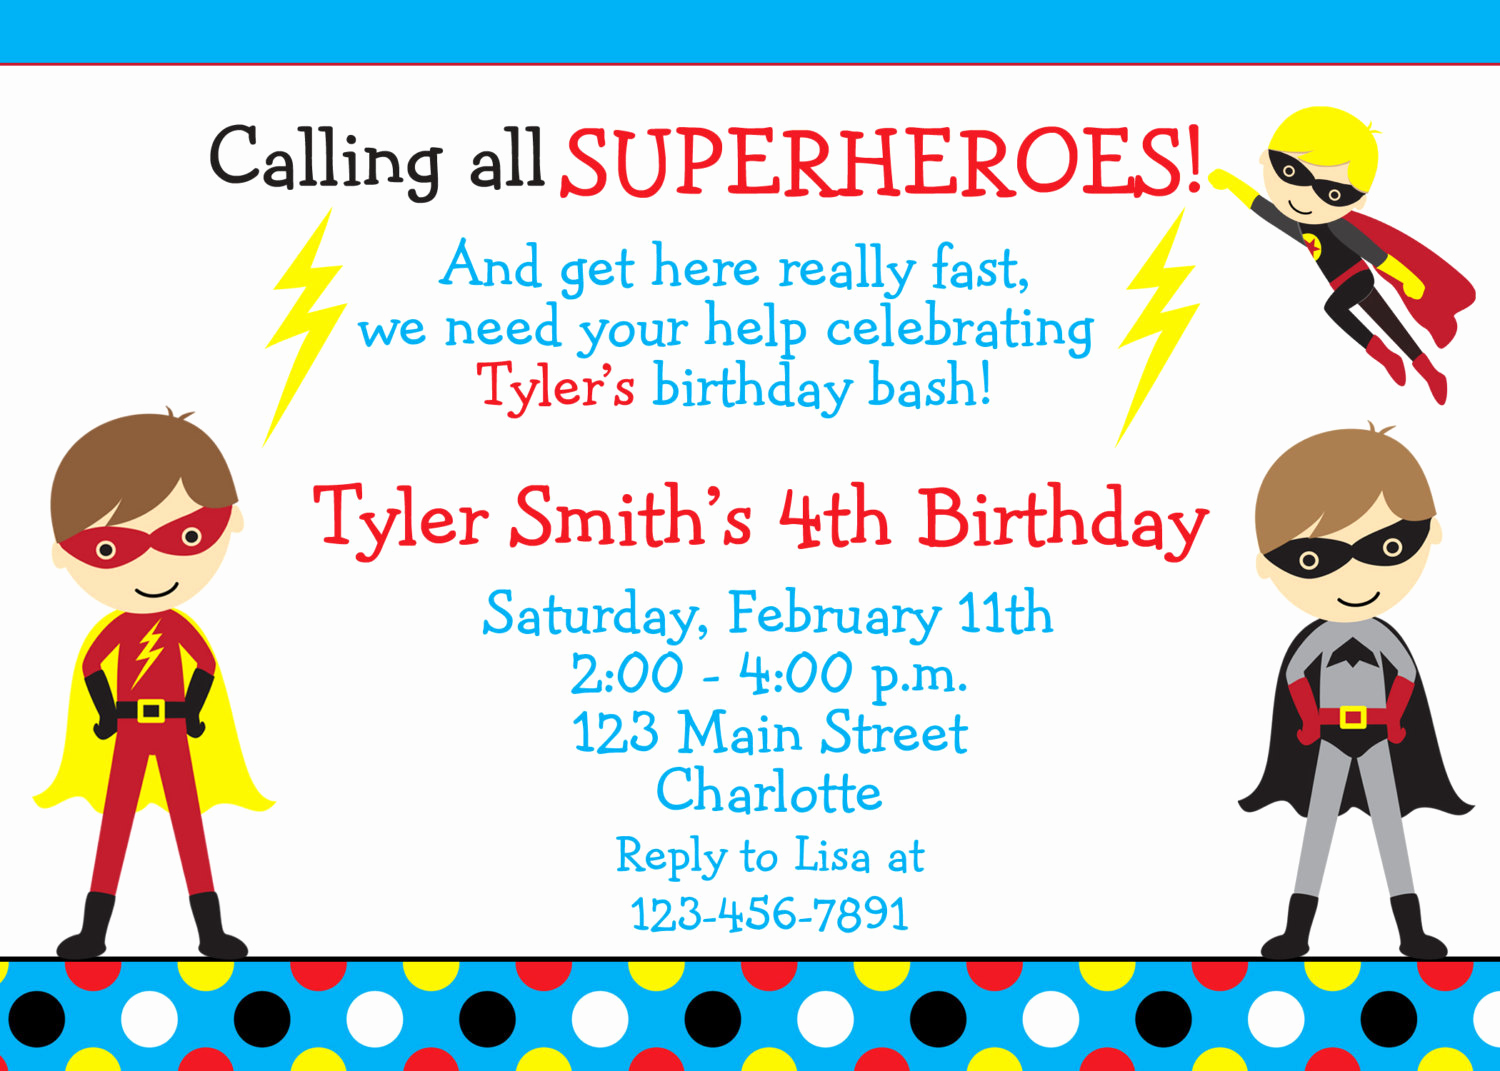 Superhero Birthday Invitation Wording Lovely Superhero Birthday Party Invitation Super Hero Superheros